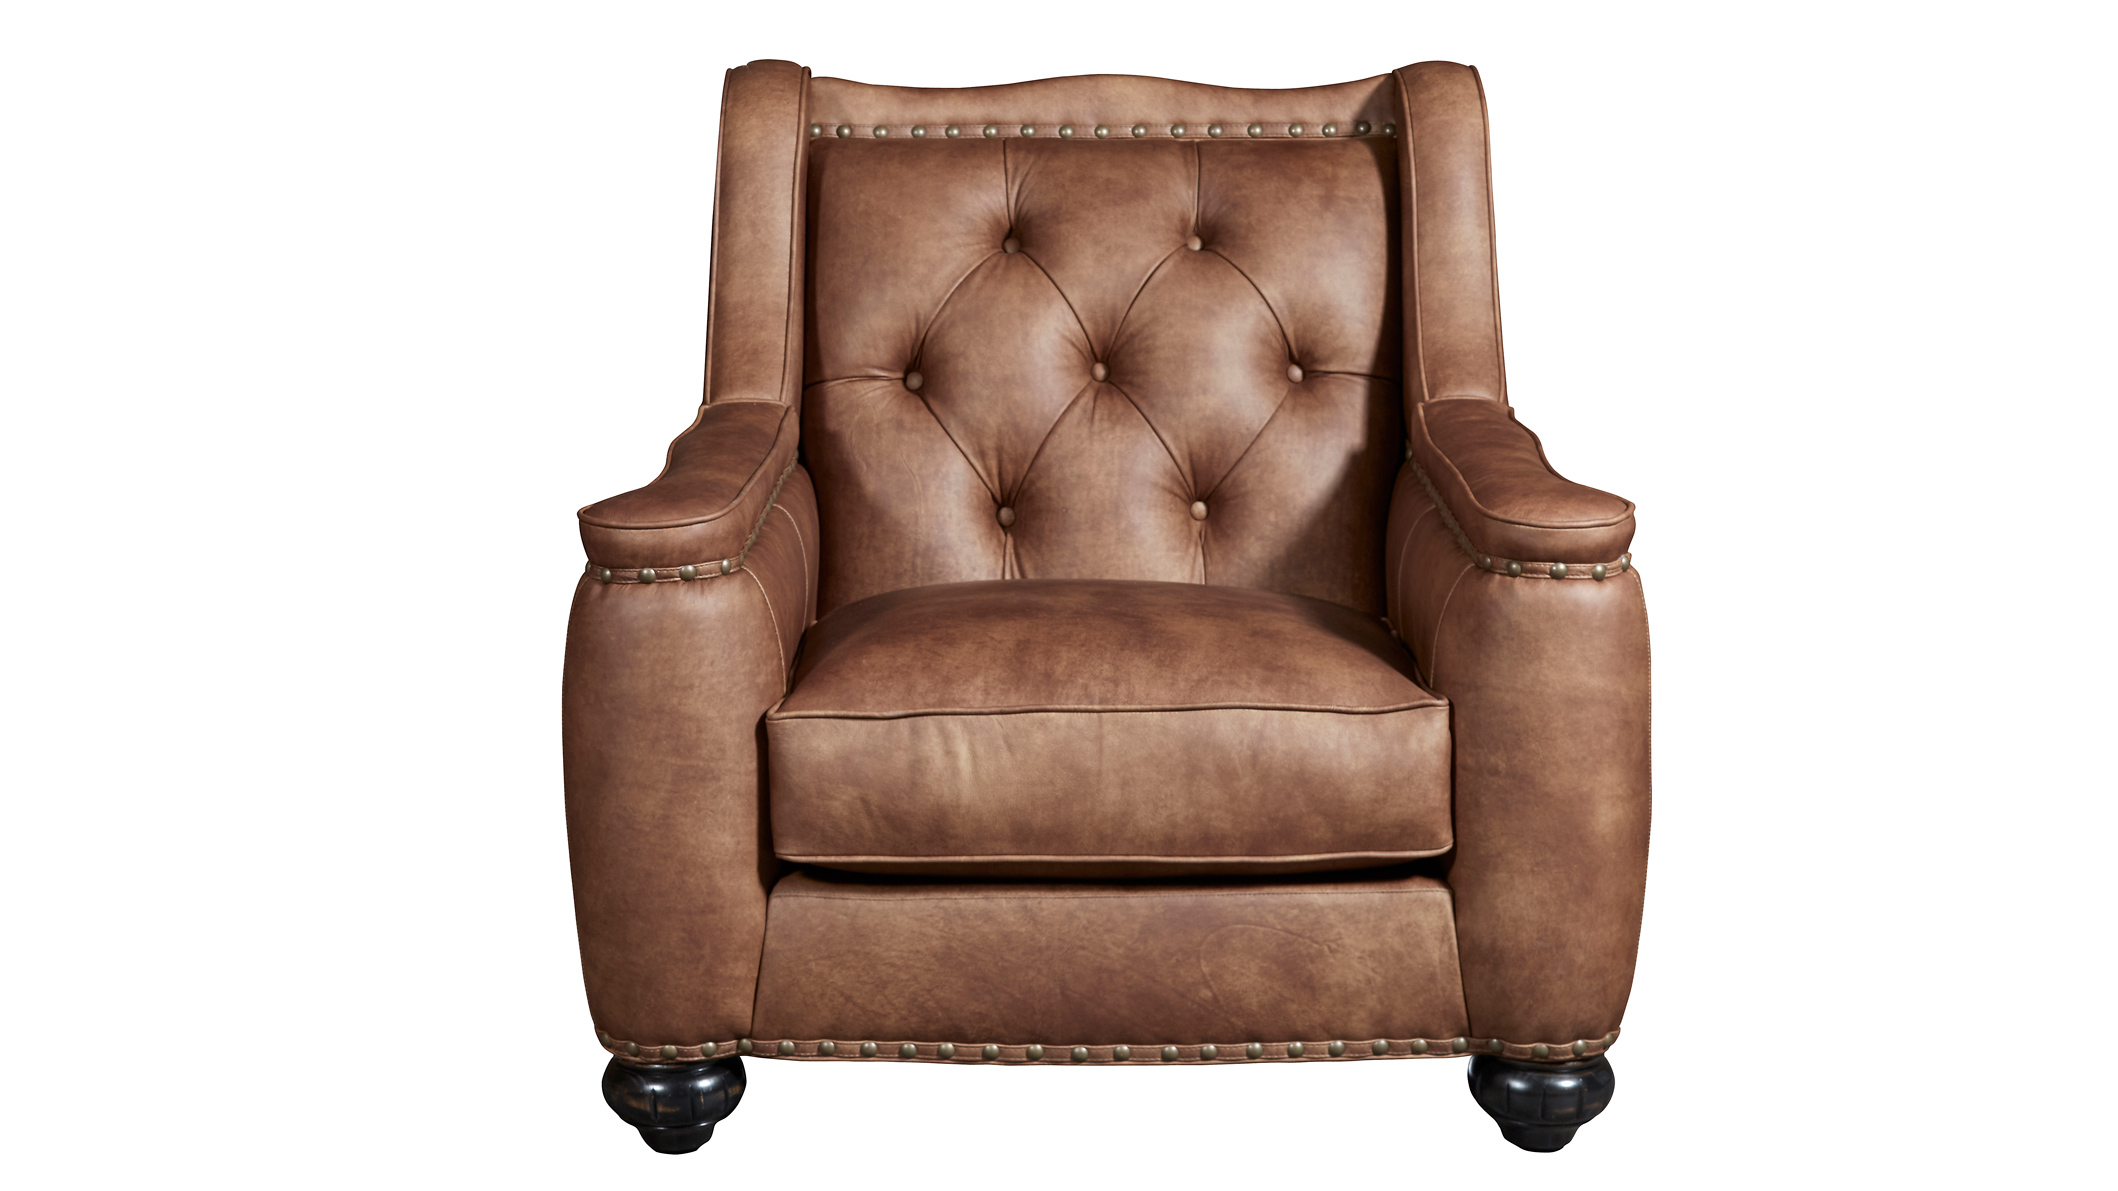 Rustic Leather Chairs Chelsea Rustic Charm Leather Chair